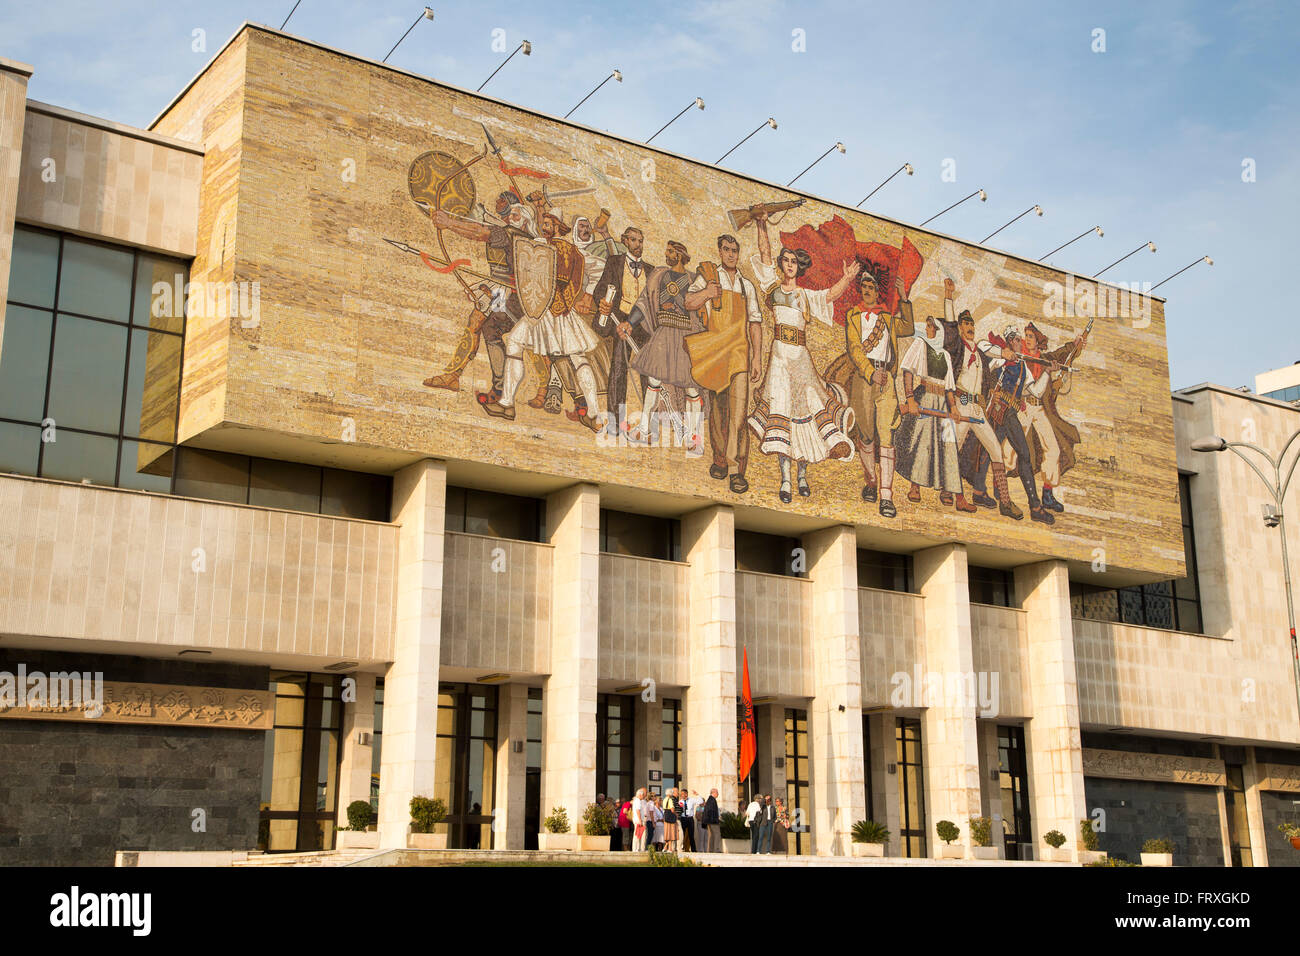 Exterior of National History Museum near Skanderbeg Square, Tirana, Albania - Stock Image